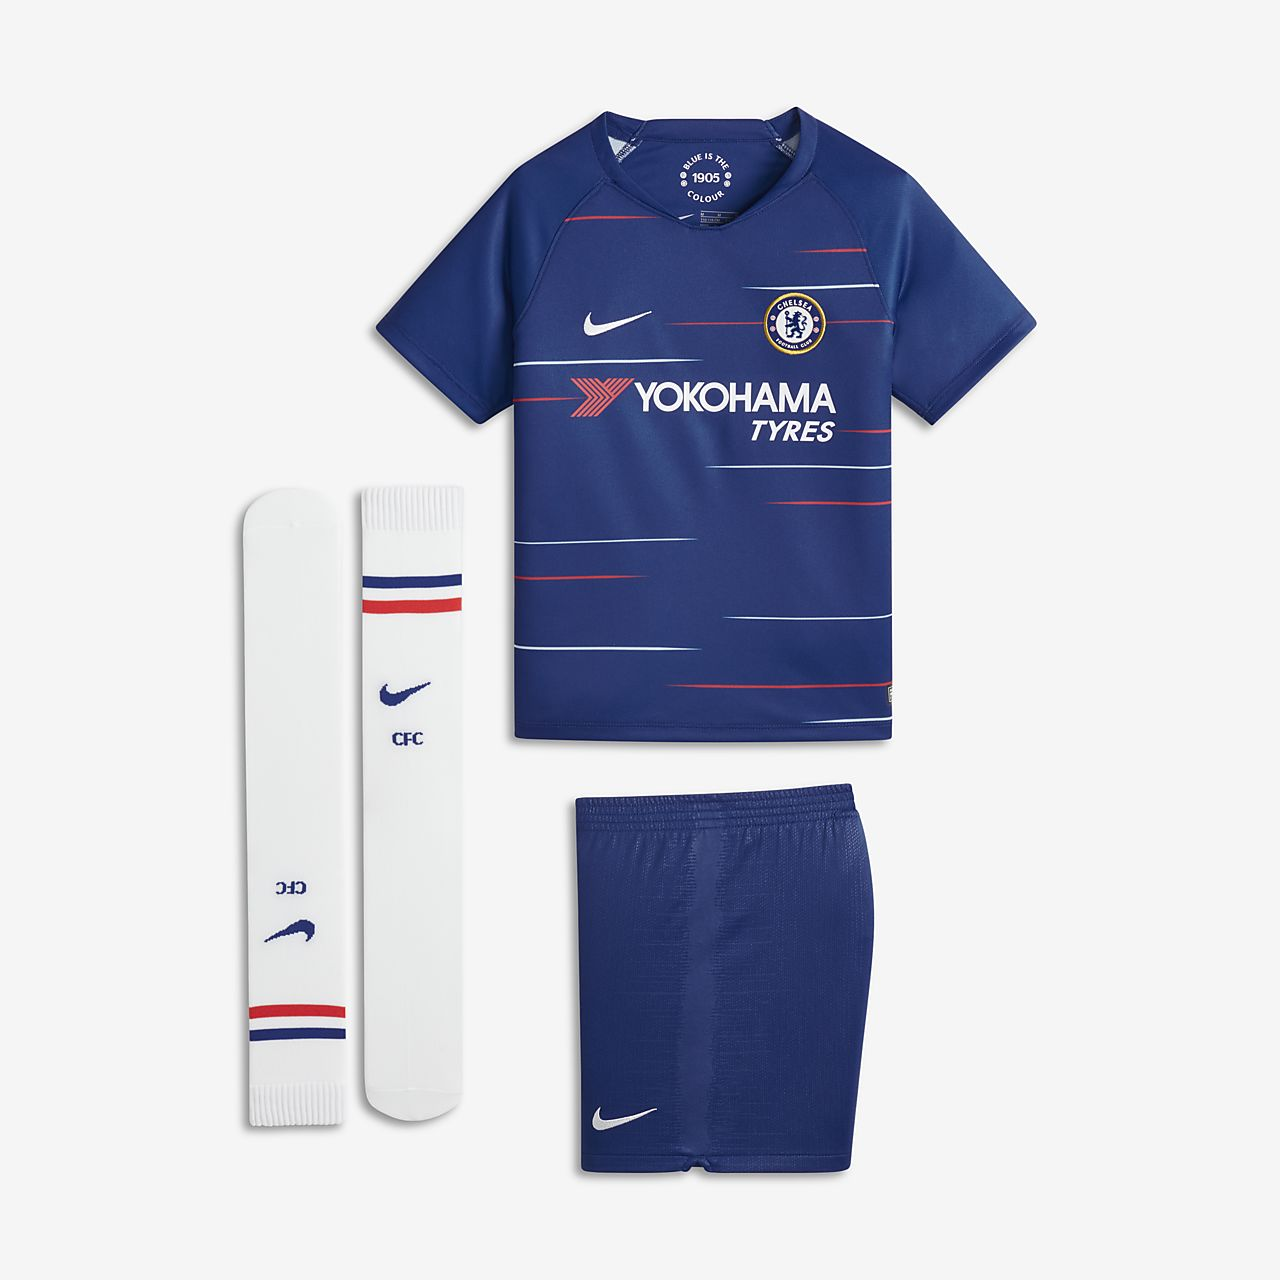 9a61399ba 2018 19 Chelsea FC Stadium Home Younger Kids  Football Kit. Nike.com AE